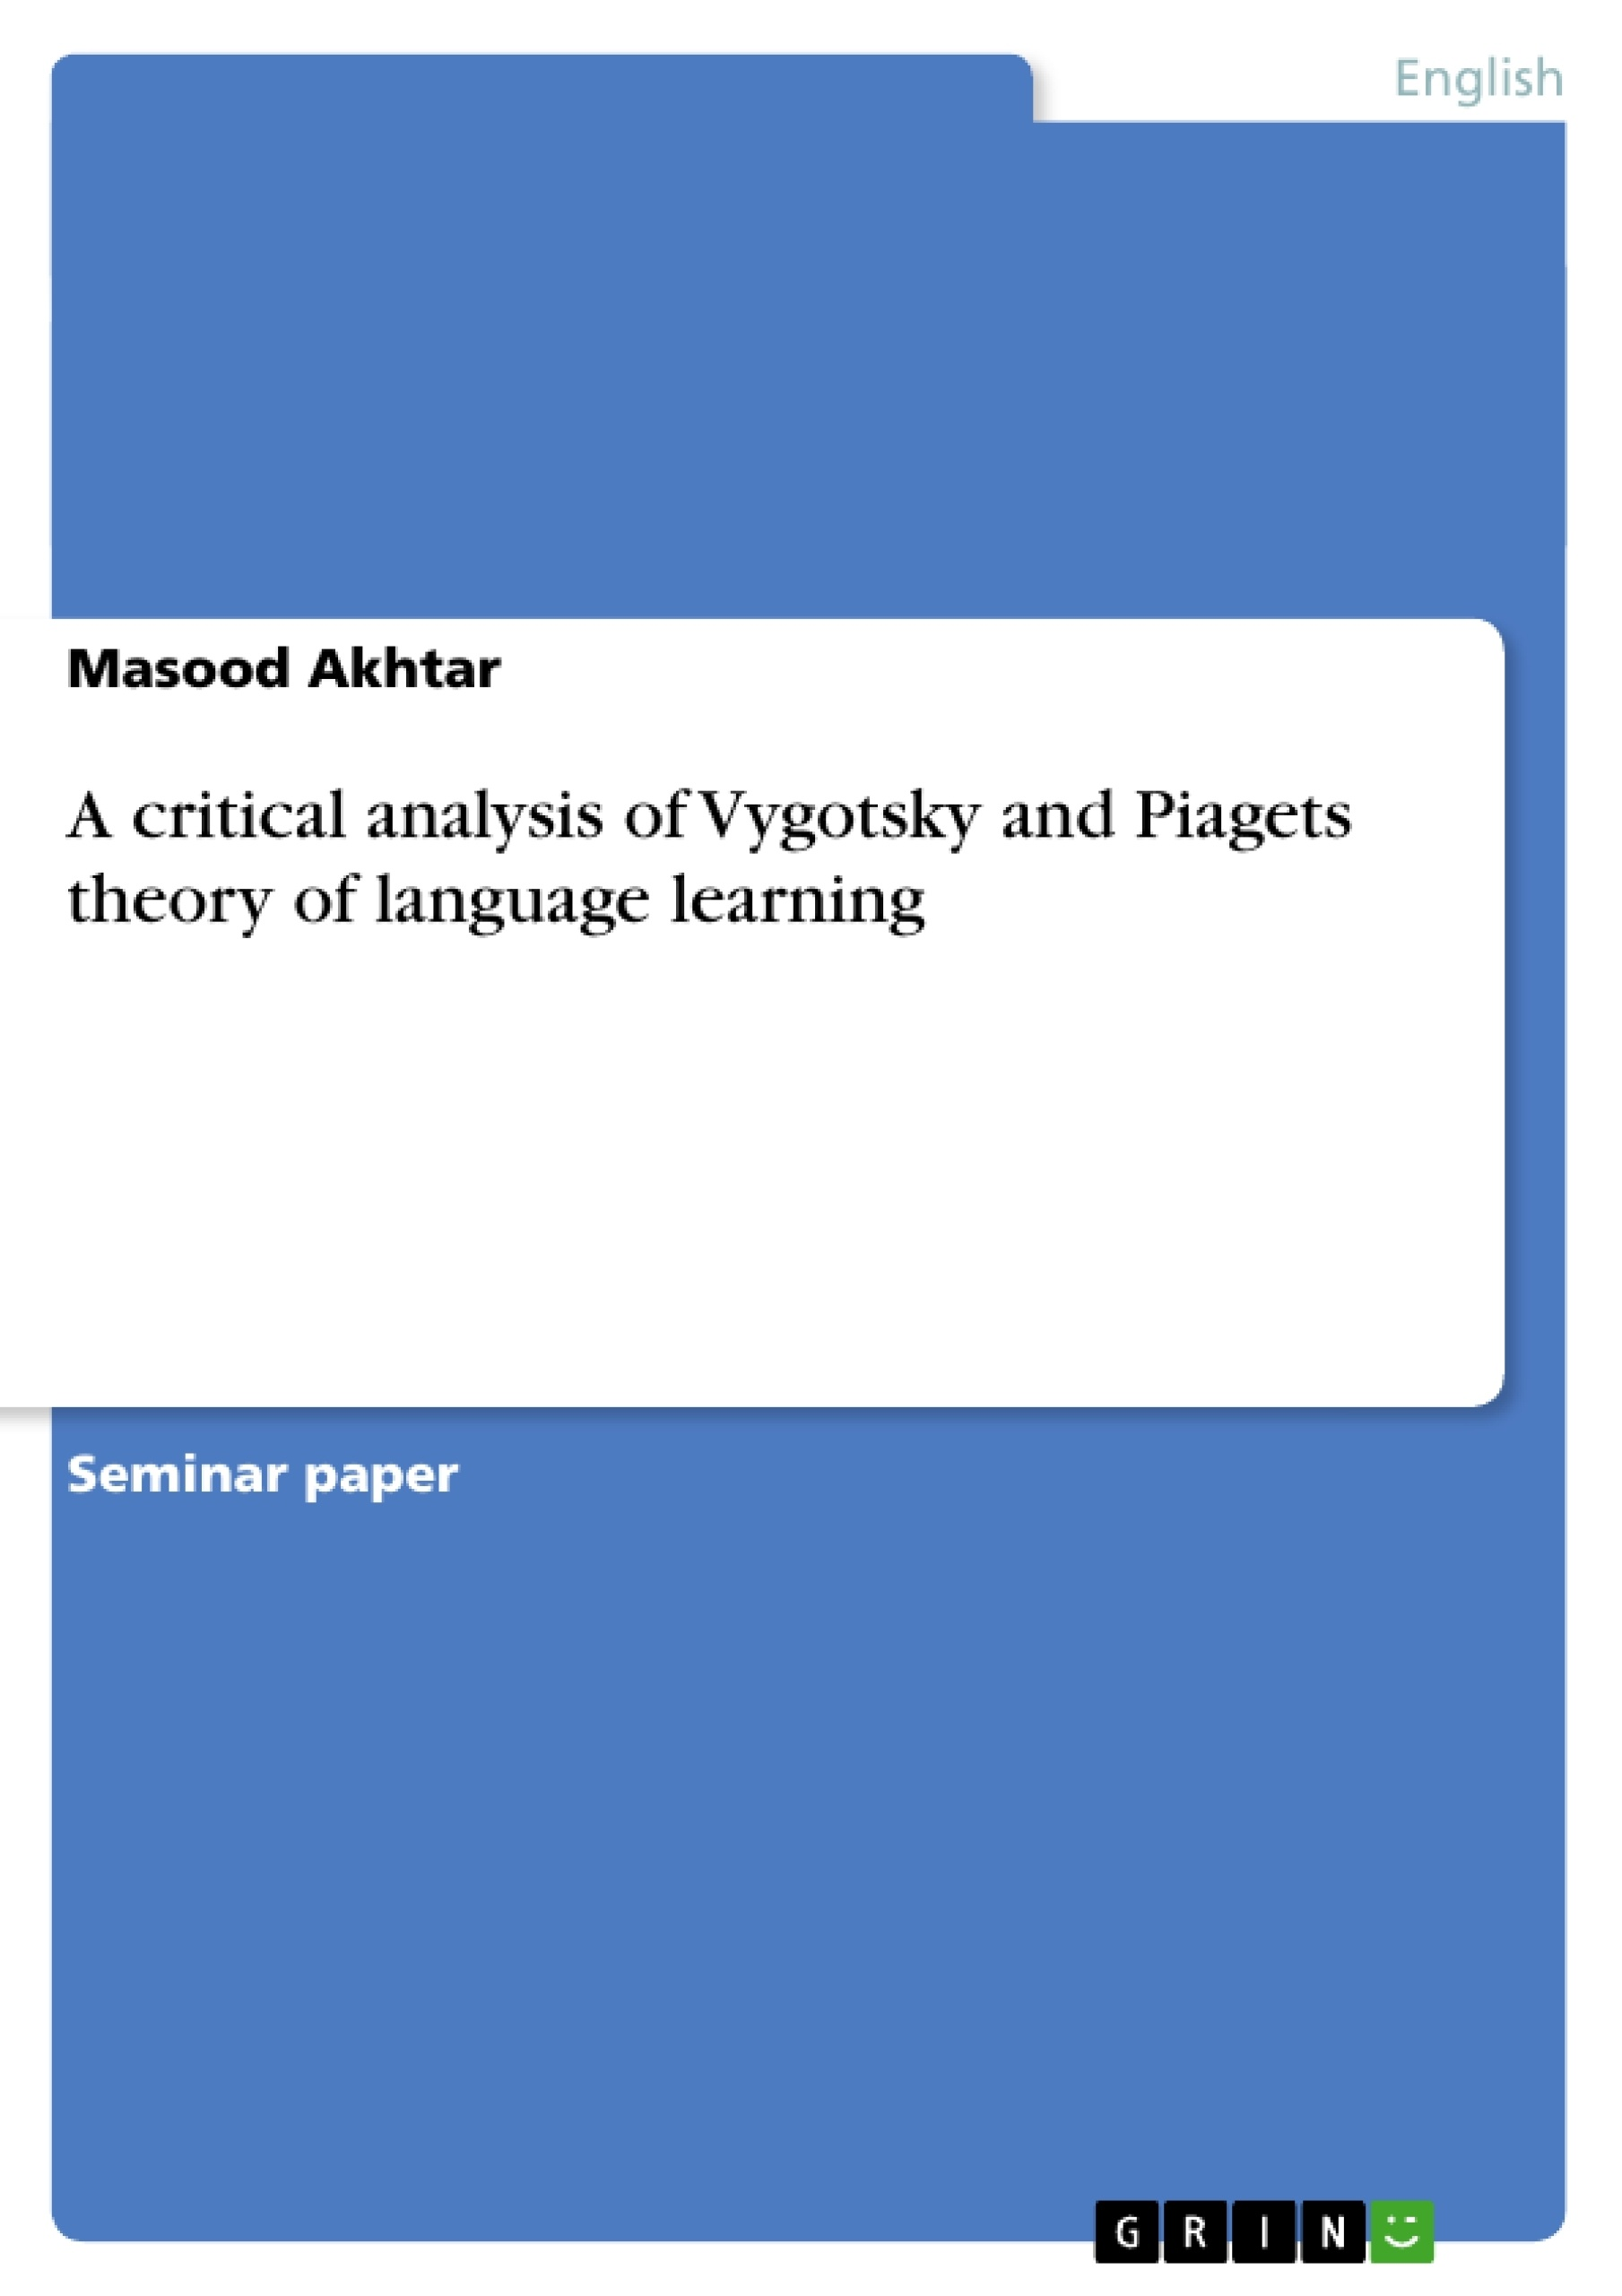 a critical analysis of vygotsky and piagets theory of language a critical analysis of vygotsky and piagets theory of language publish your master s thesis bachelor s thesis essay or term paper